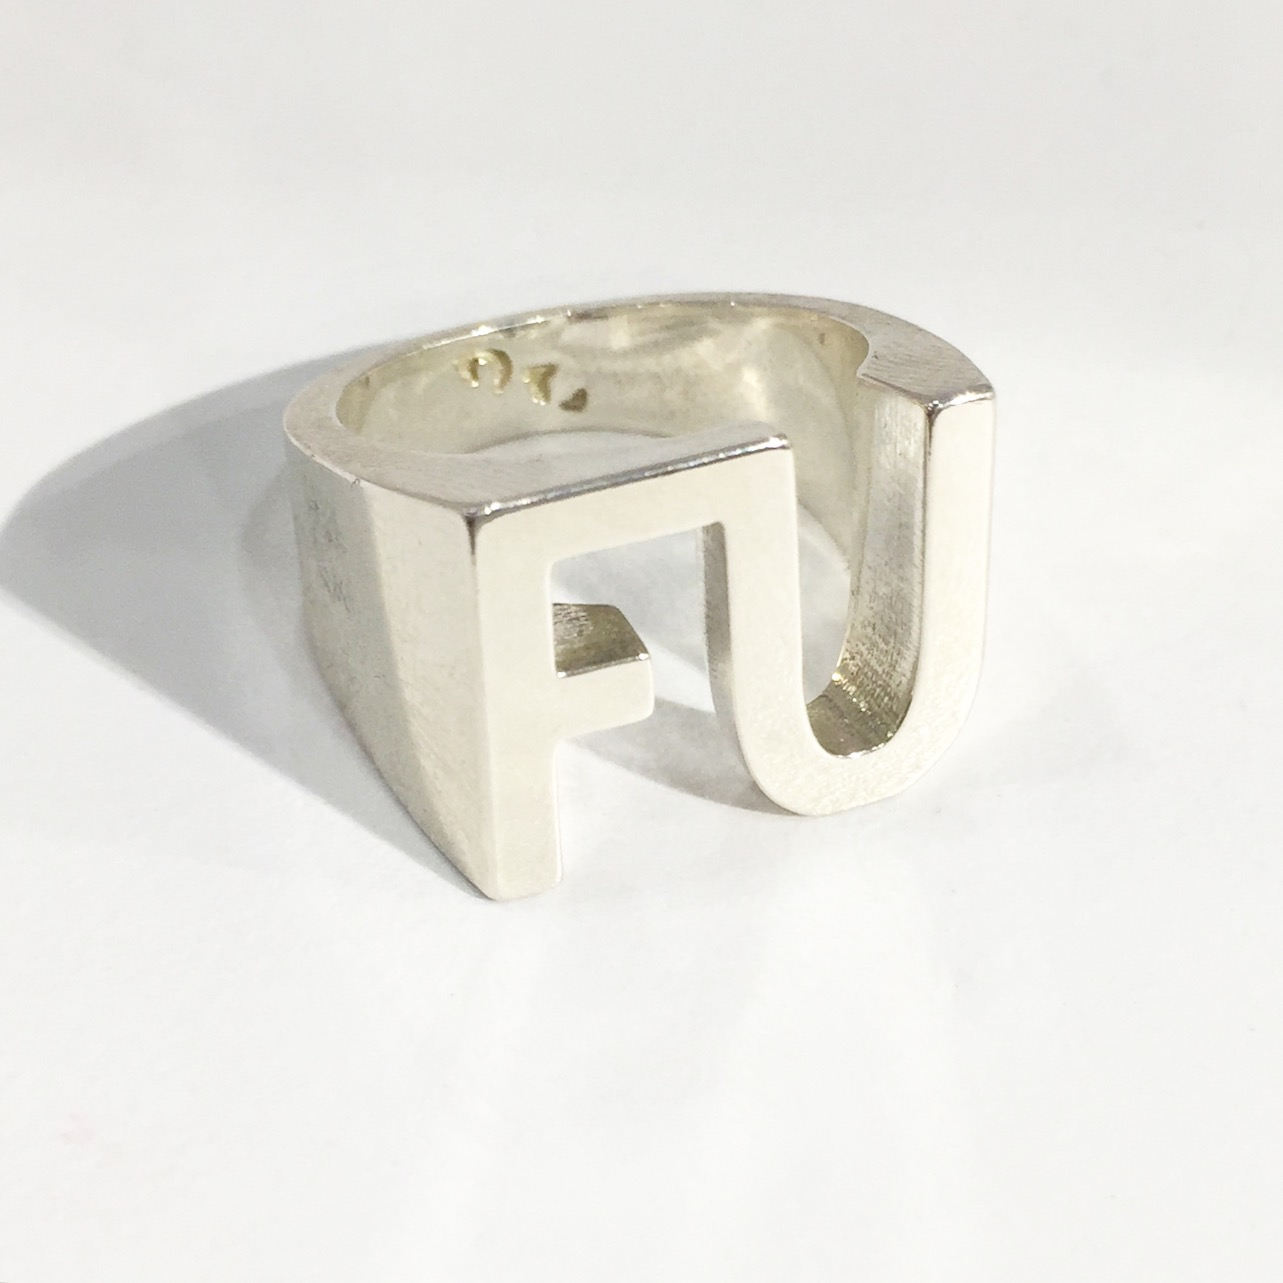 A close up of our soon to launch FU Ring in Sterling Silver, this piece stole the show